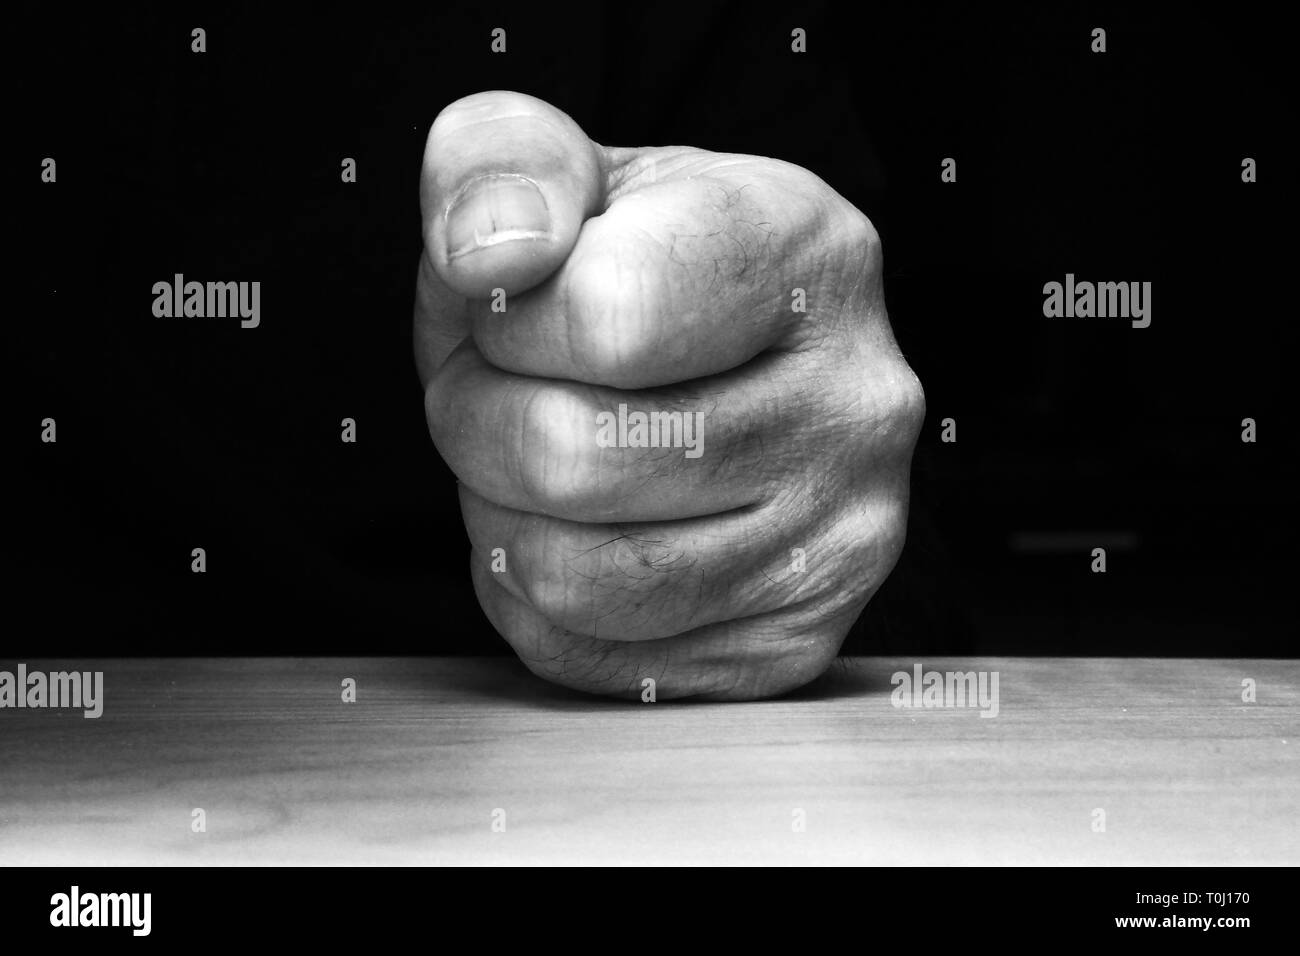 Fist pounding on a table - Stock Image